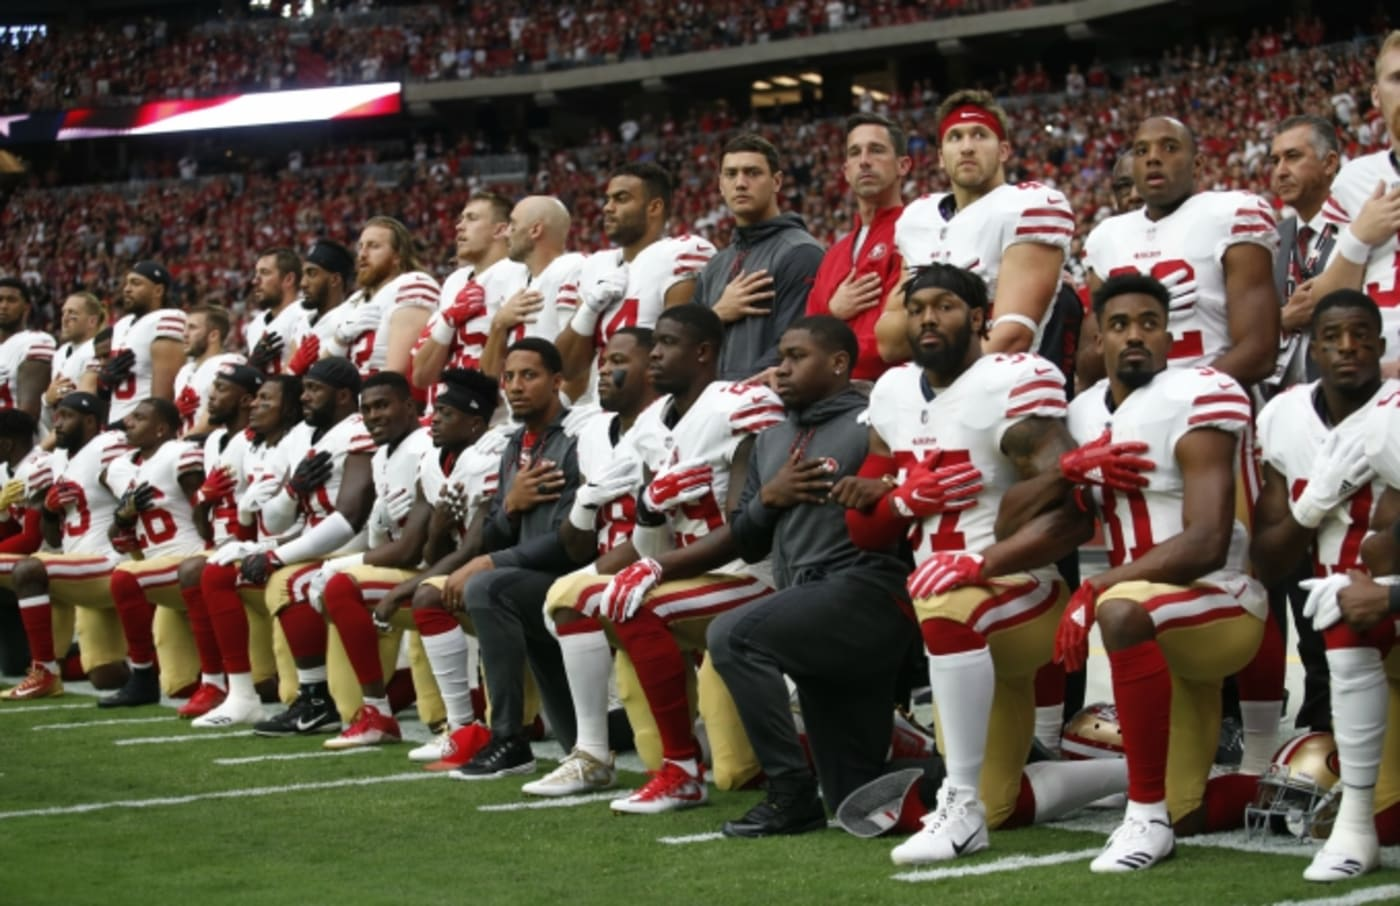 49ers players kneel during the national anthem.